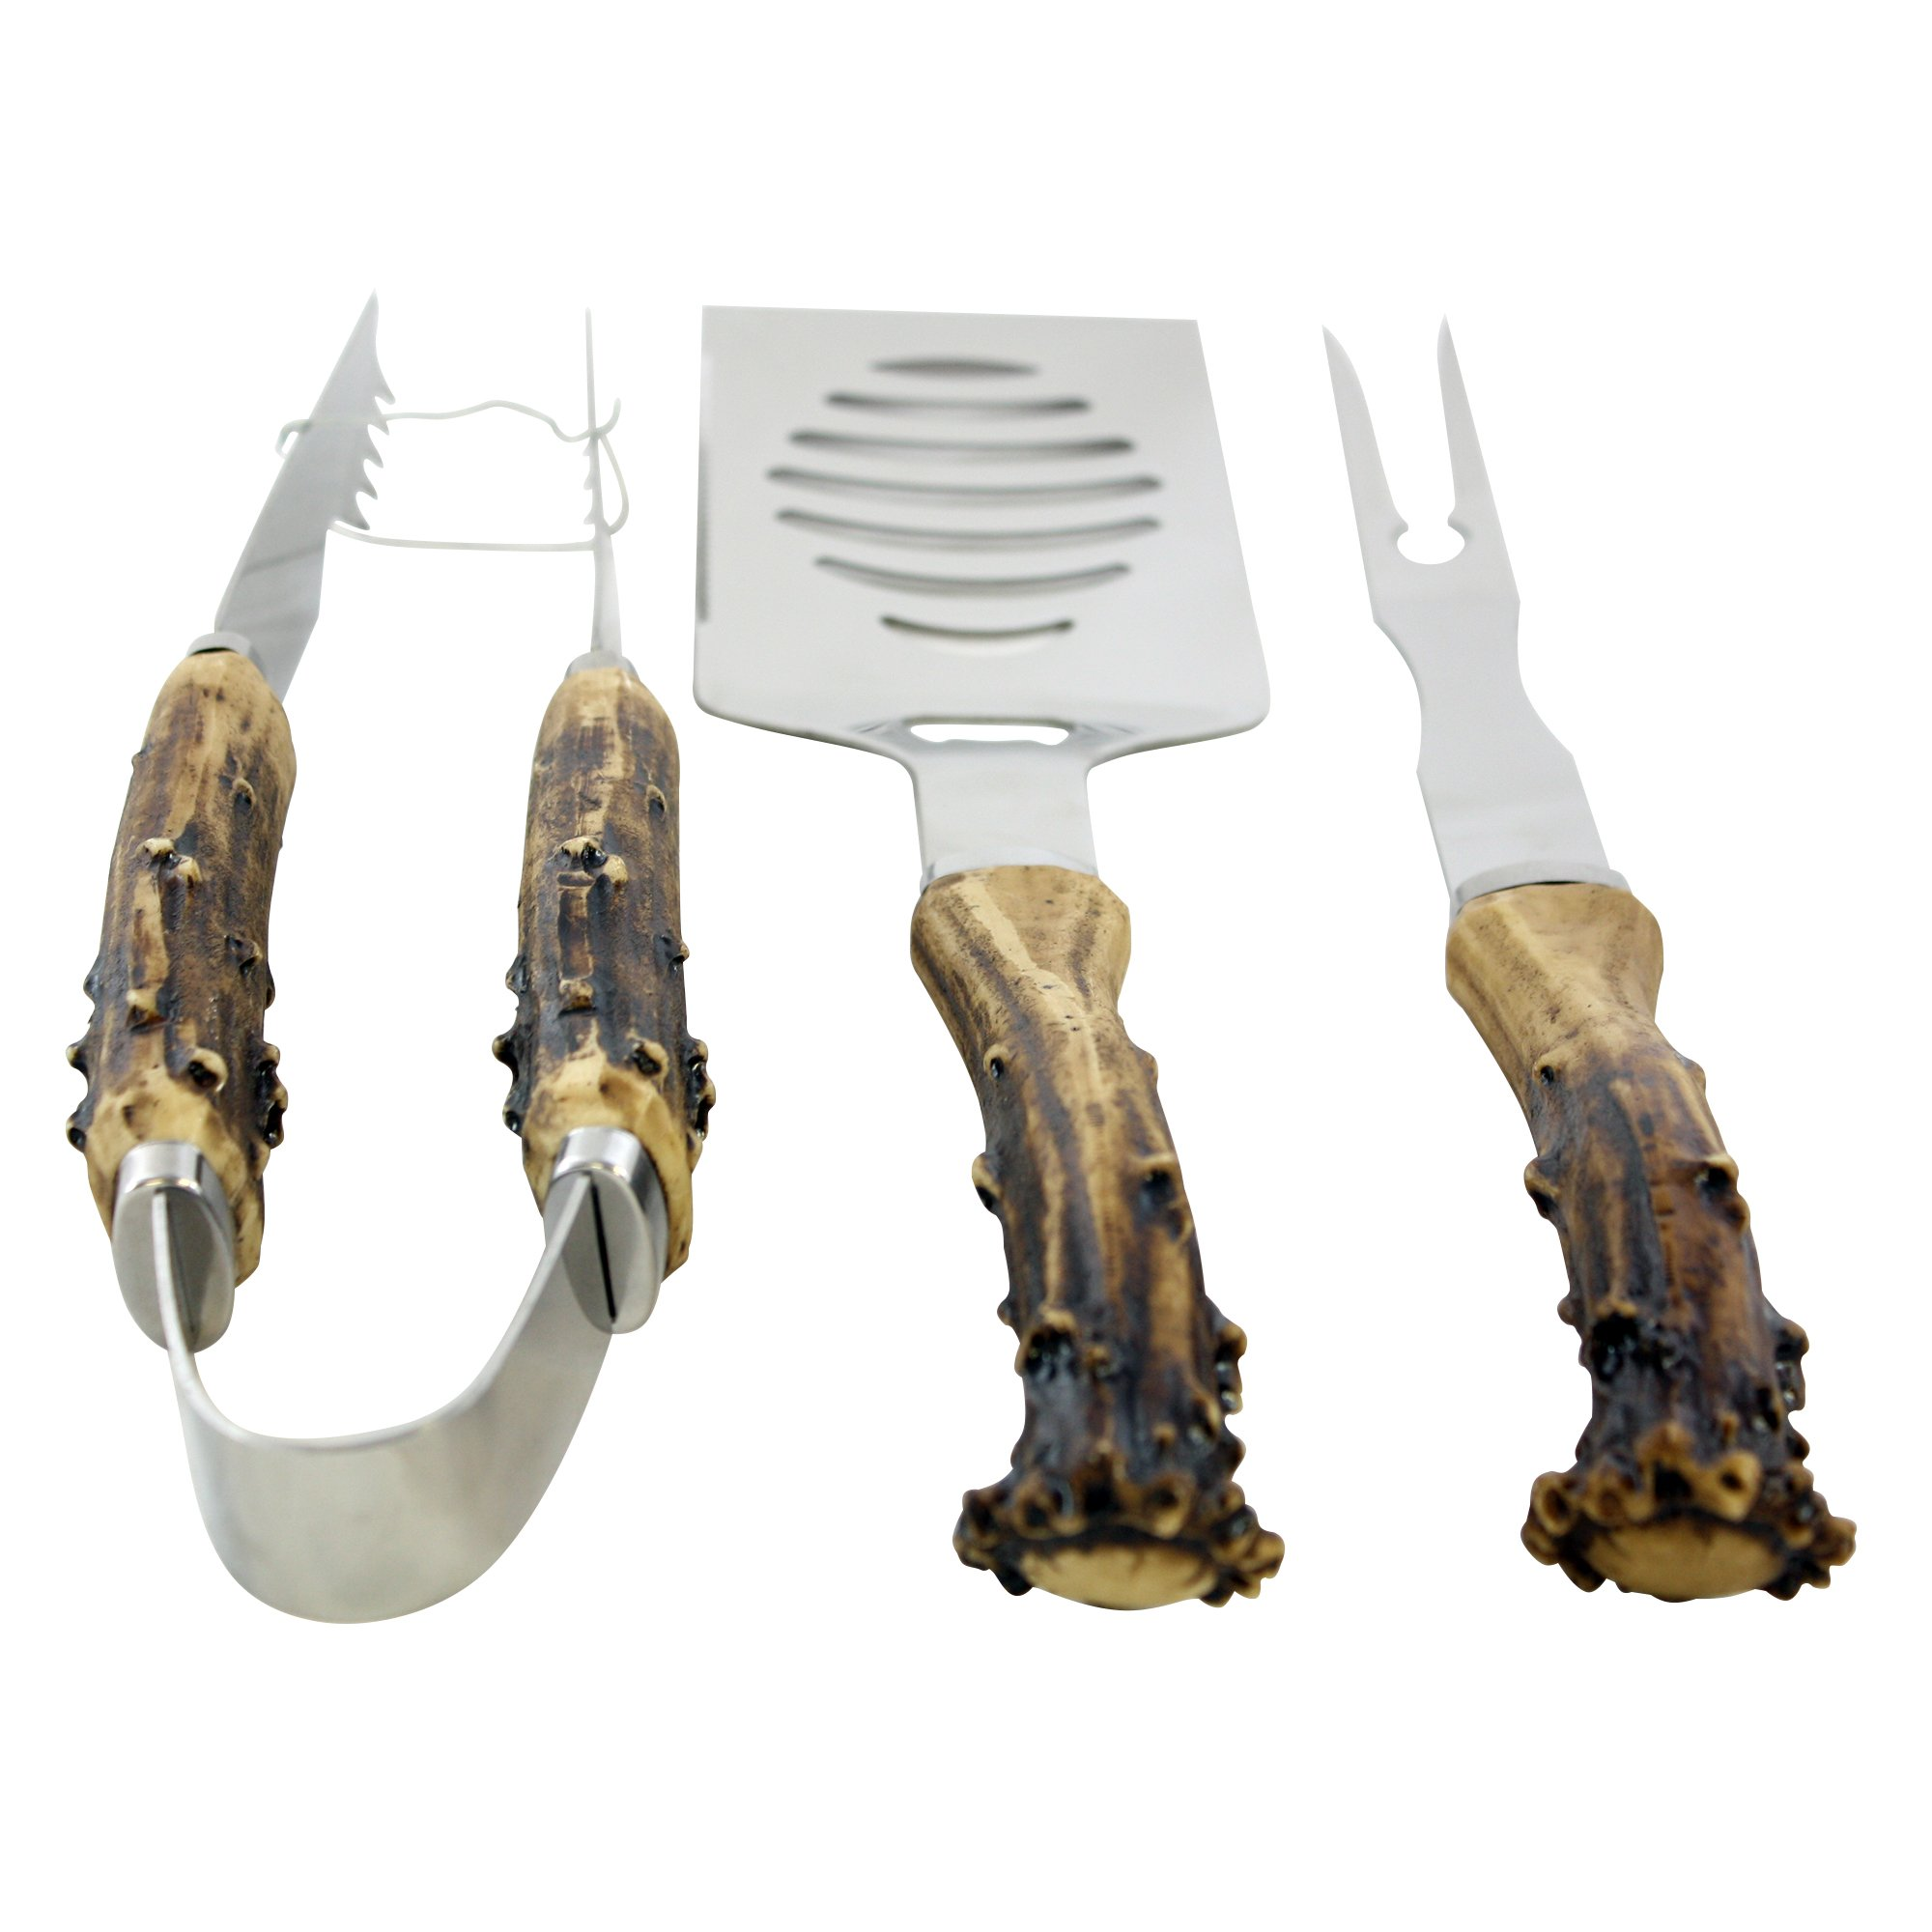 Pine Ridge Antler Handle Grilling Set for BBQ Outdoors Style Cooking and Grill, 3 Piece by Pine Ridge